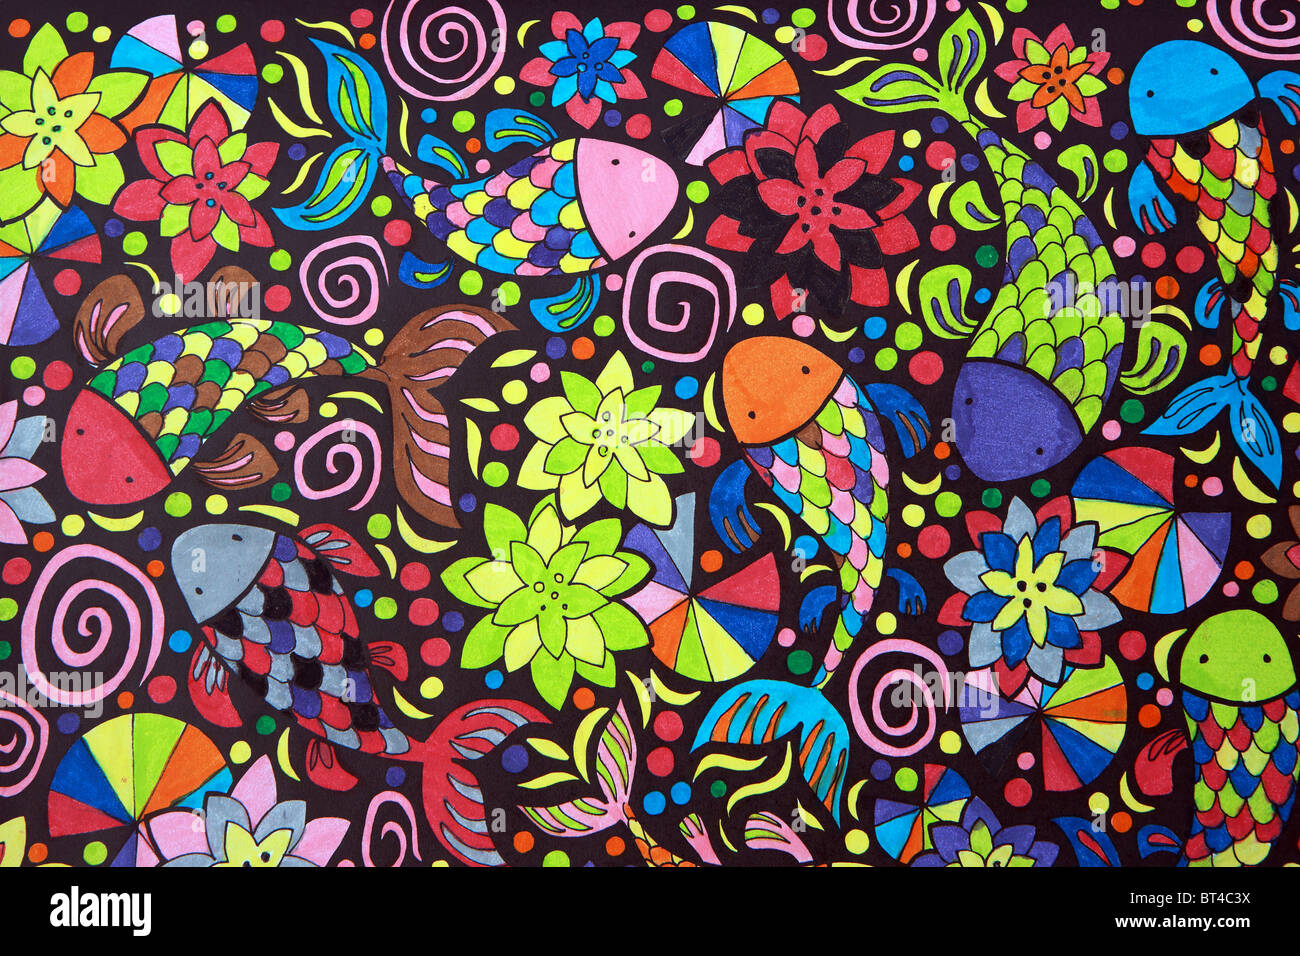 Psychedelic colouring in picture by children - Stock Image